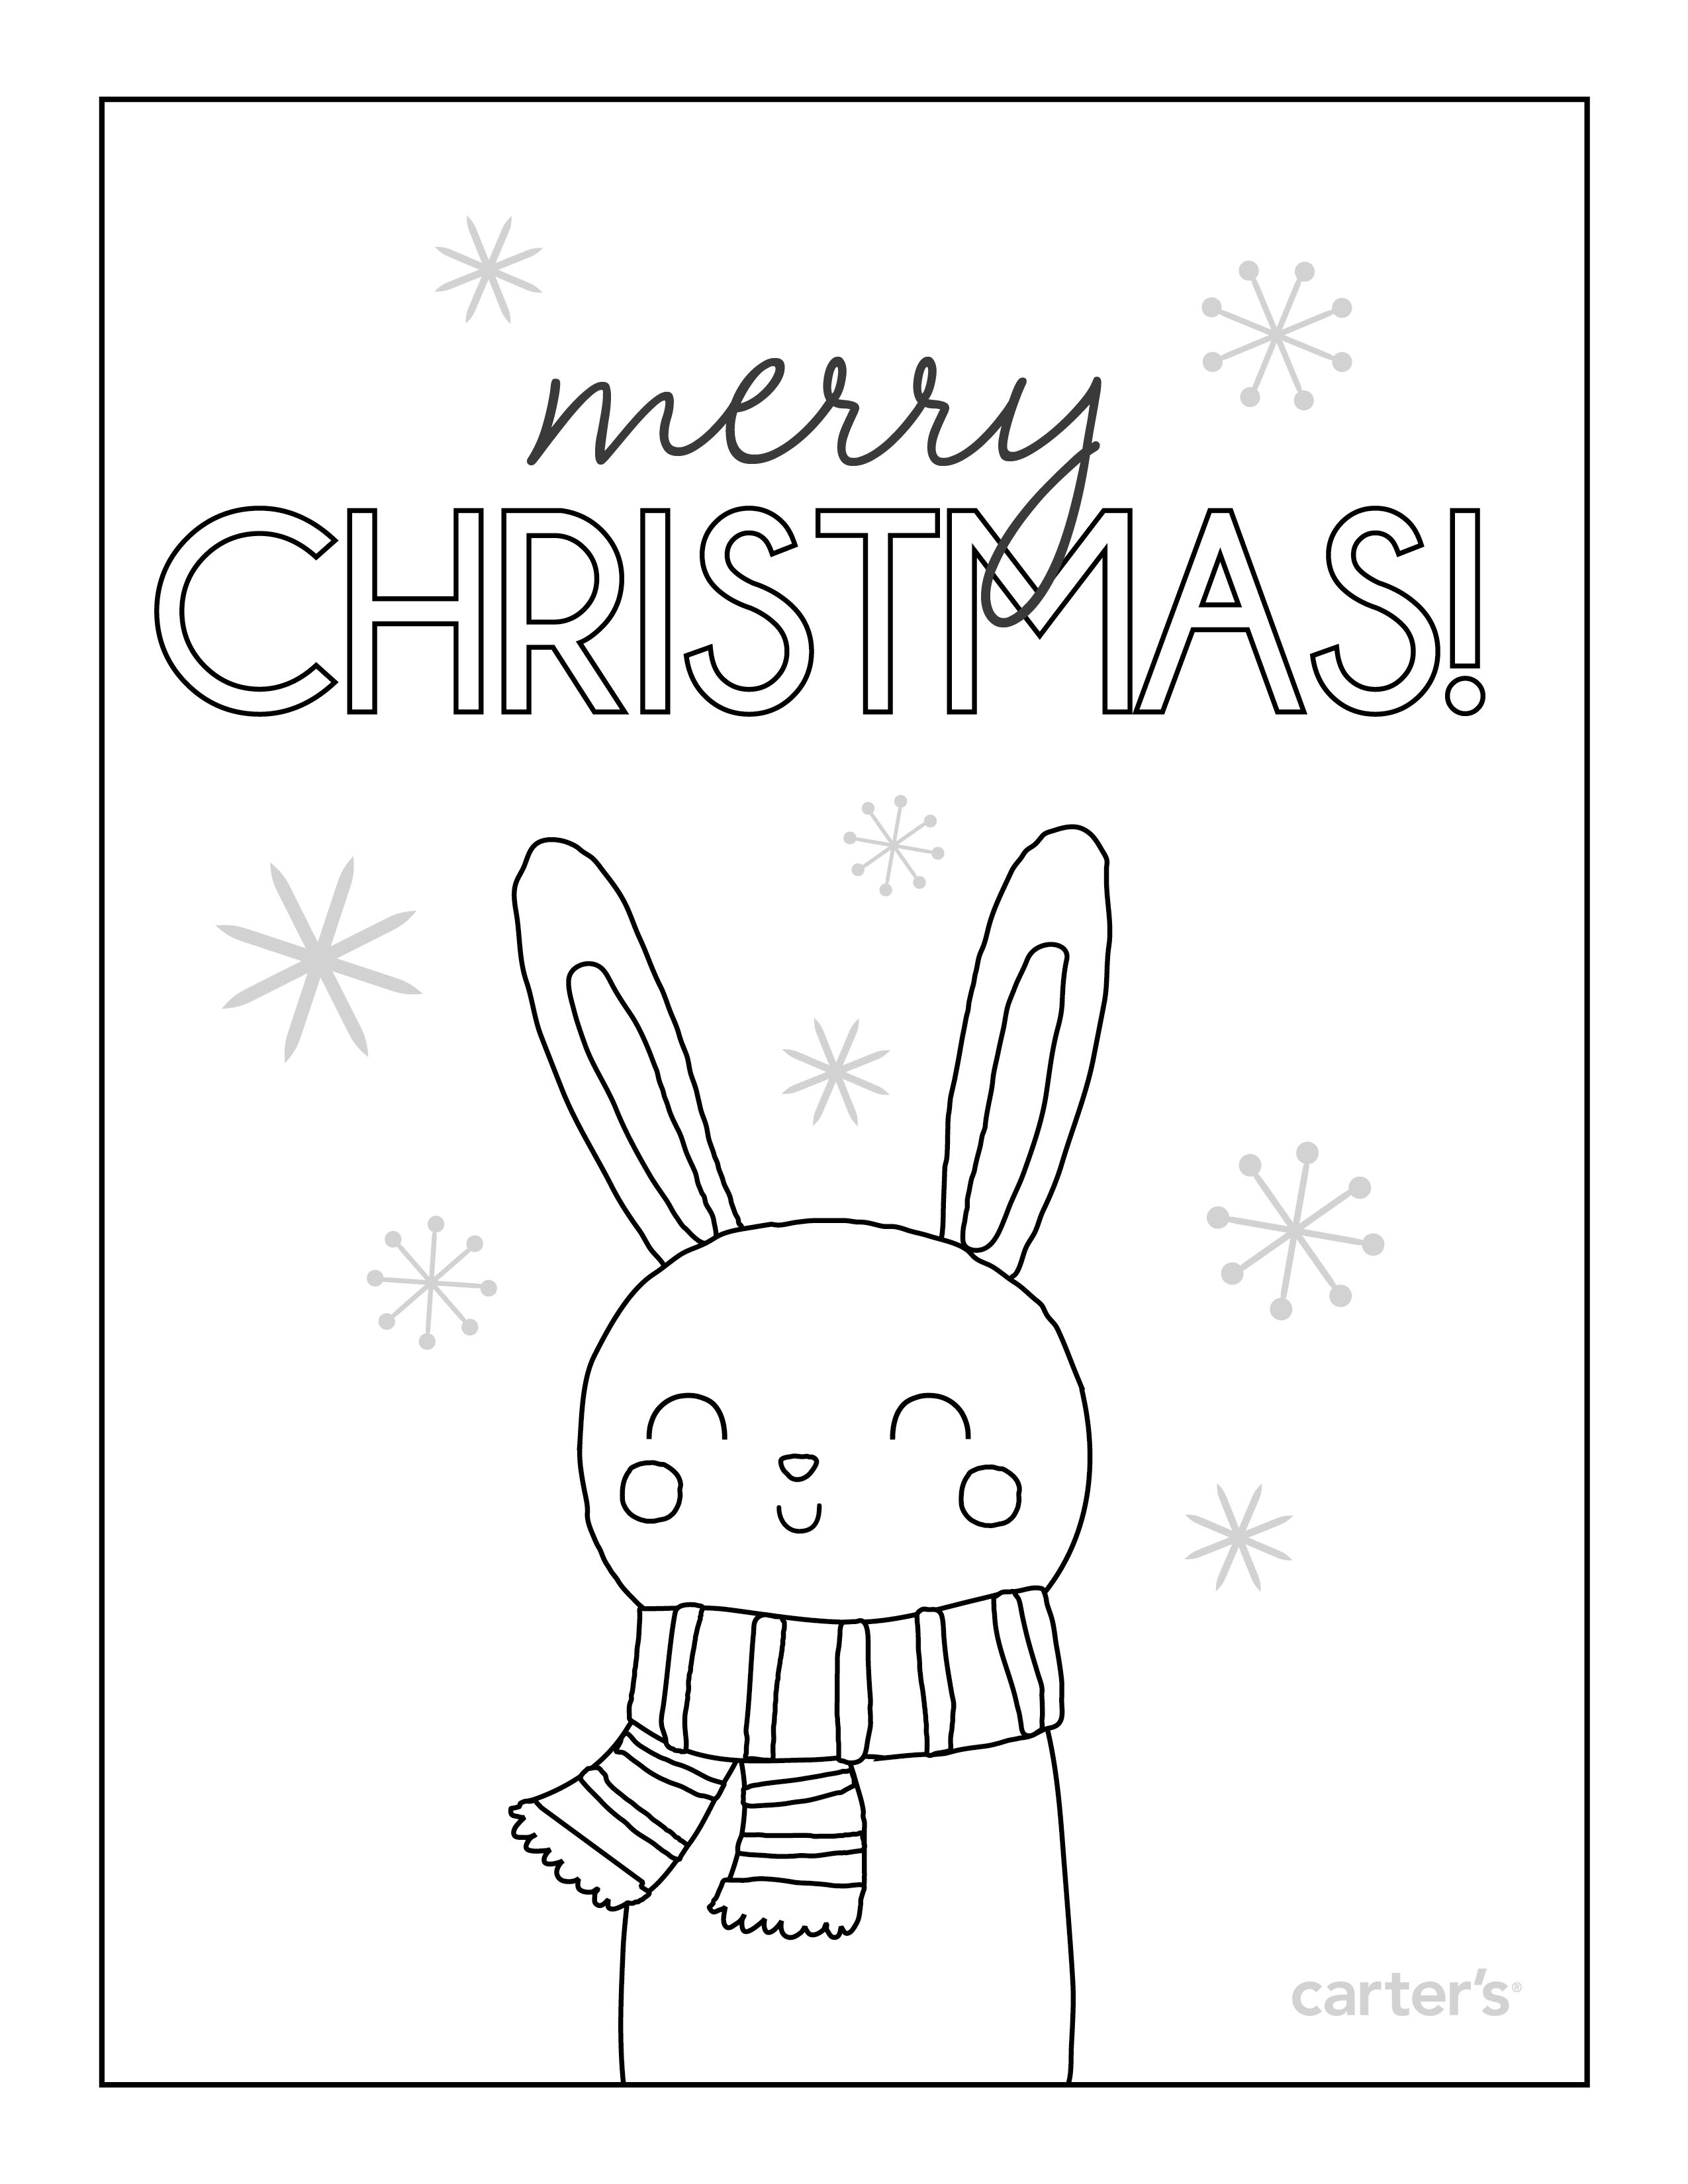 Sites Carters Site Christmas Coloring Pages Kids Christmas Coloring Pages Santa Coloring Pages